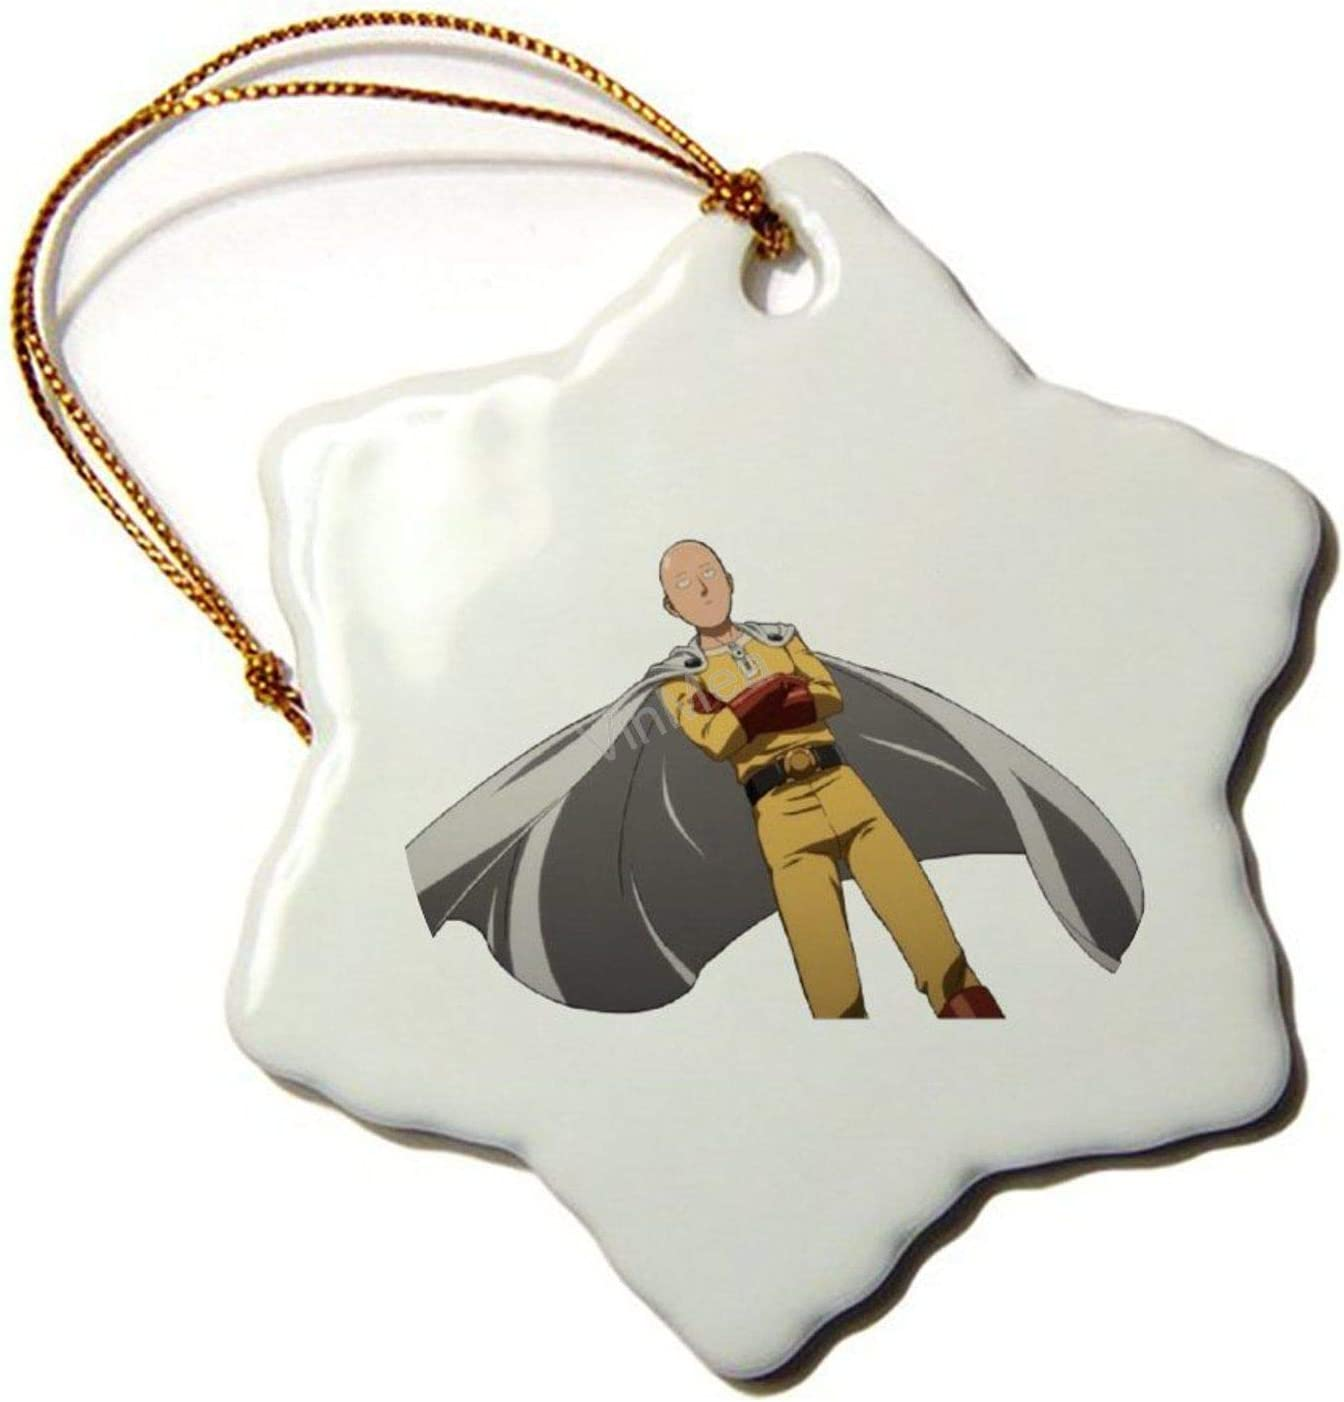 VinMea Ceramic Ornament One Punch Man Hexagon Christmas Ornaments Holiday Season Home Decor Xmas Gift